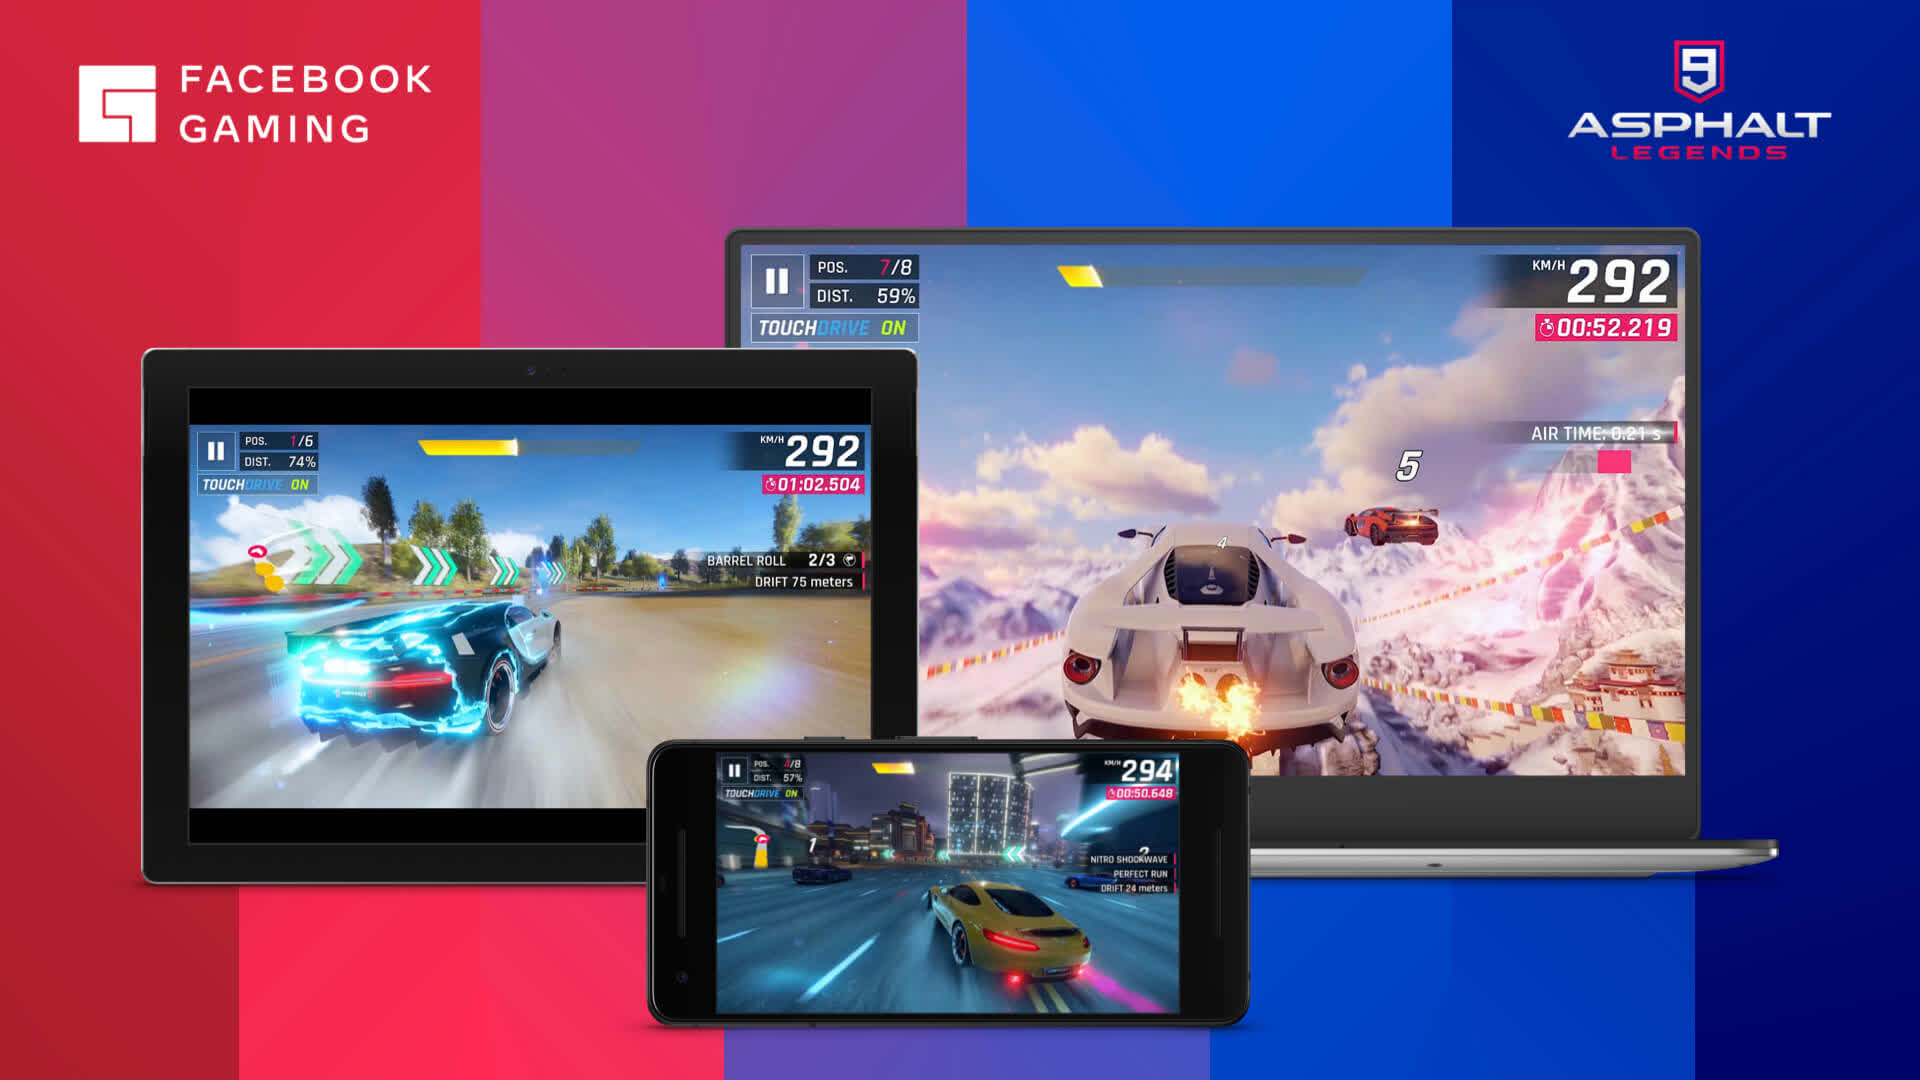 Facebook Gaming: the cloud gaming service is now official, featuring free-to-play games